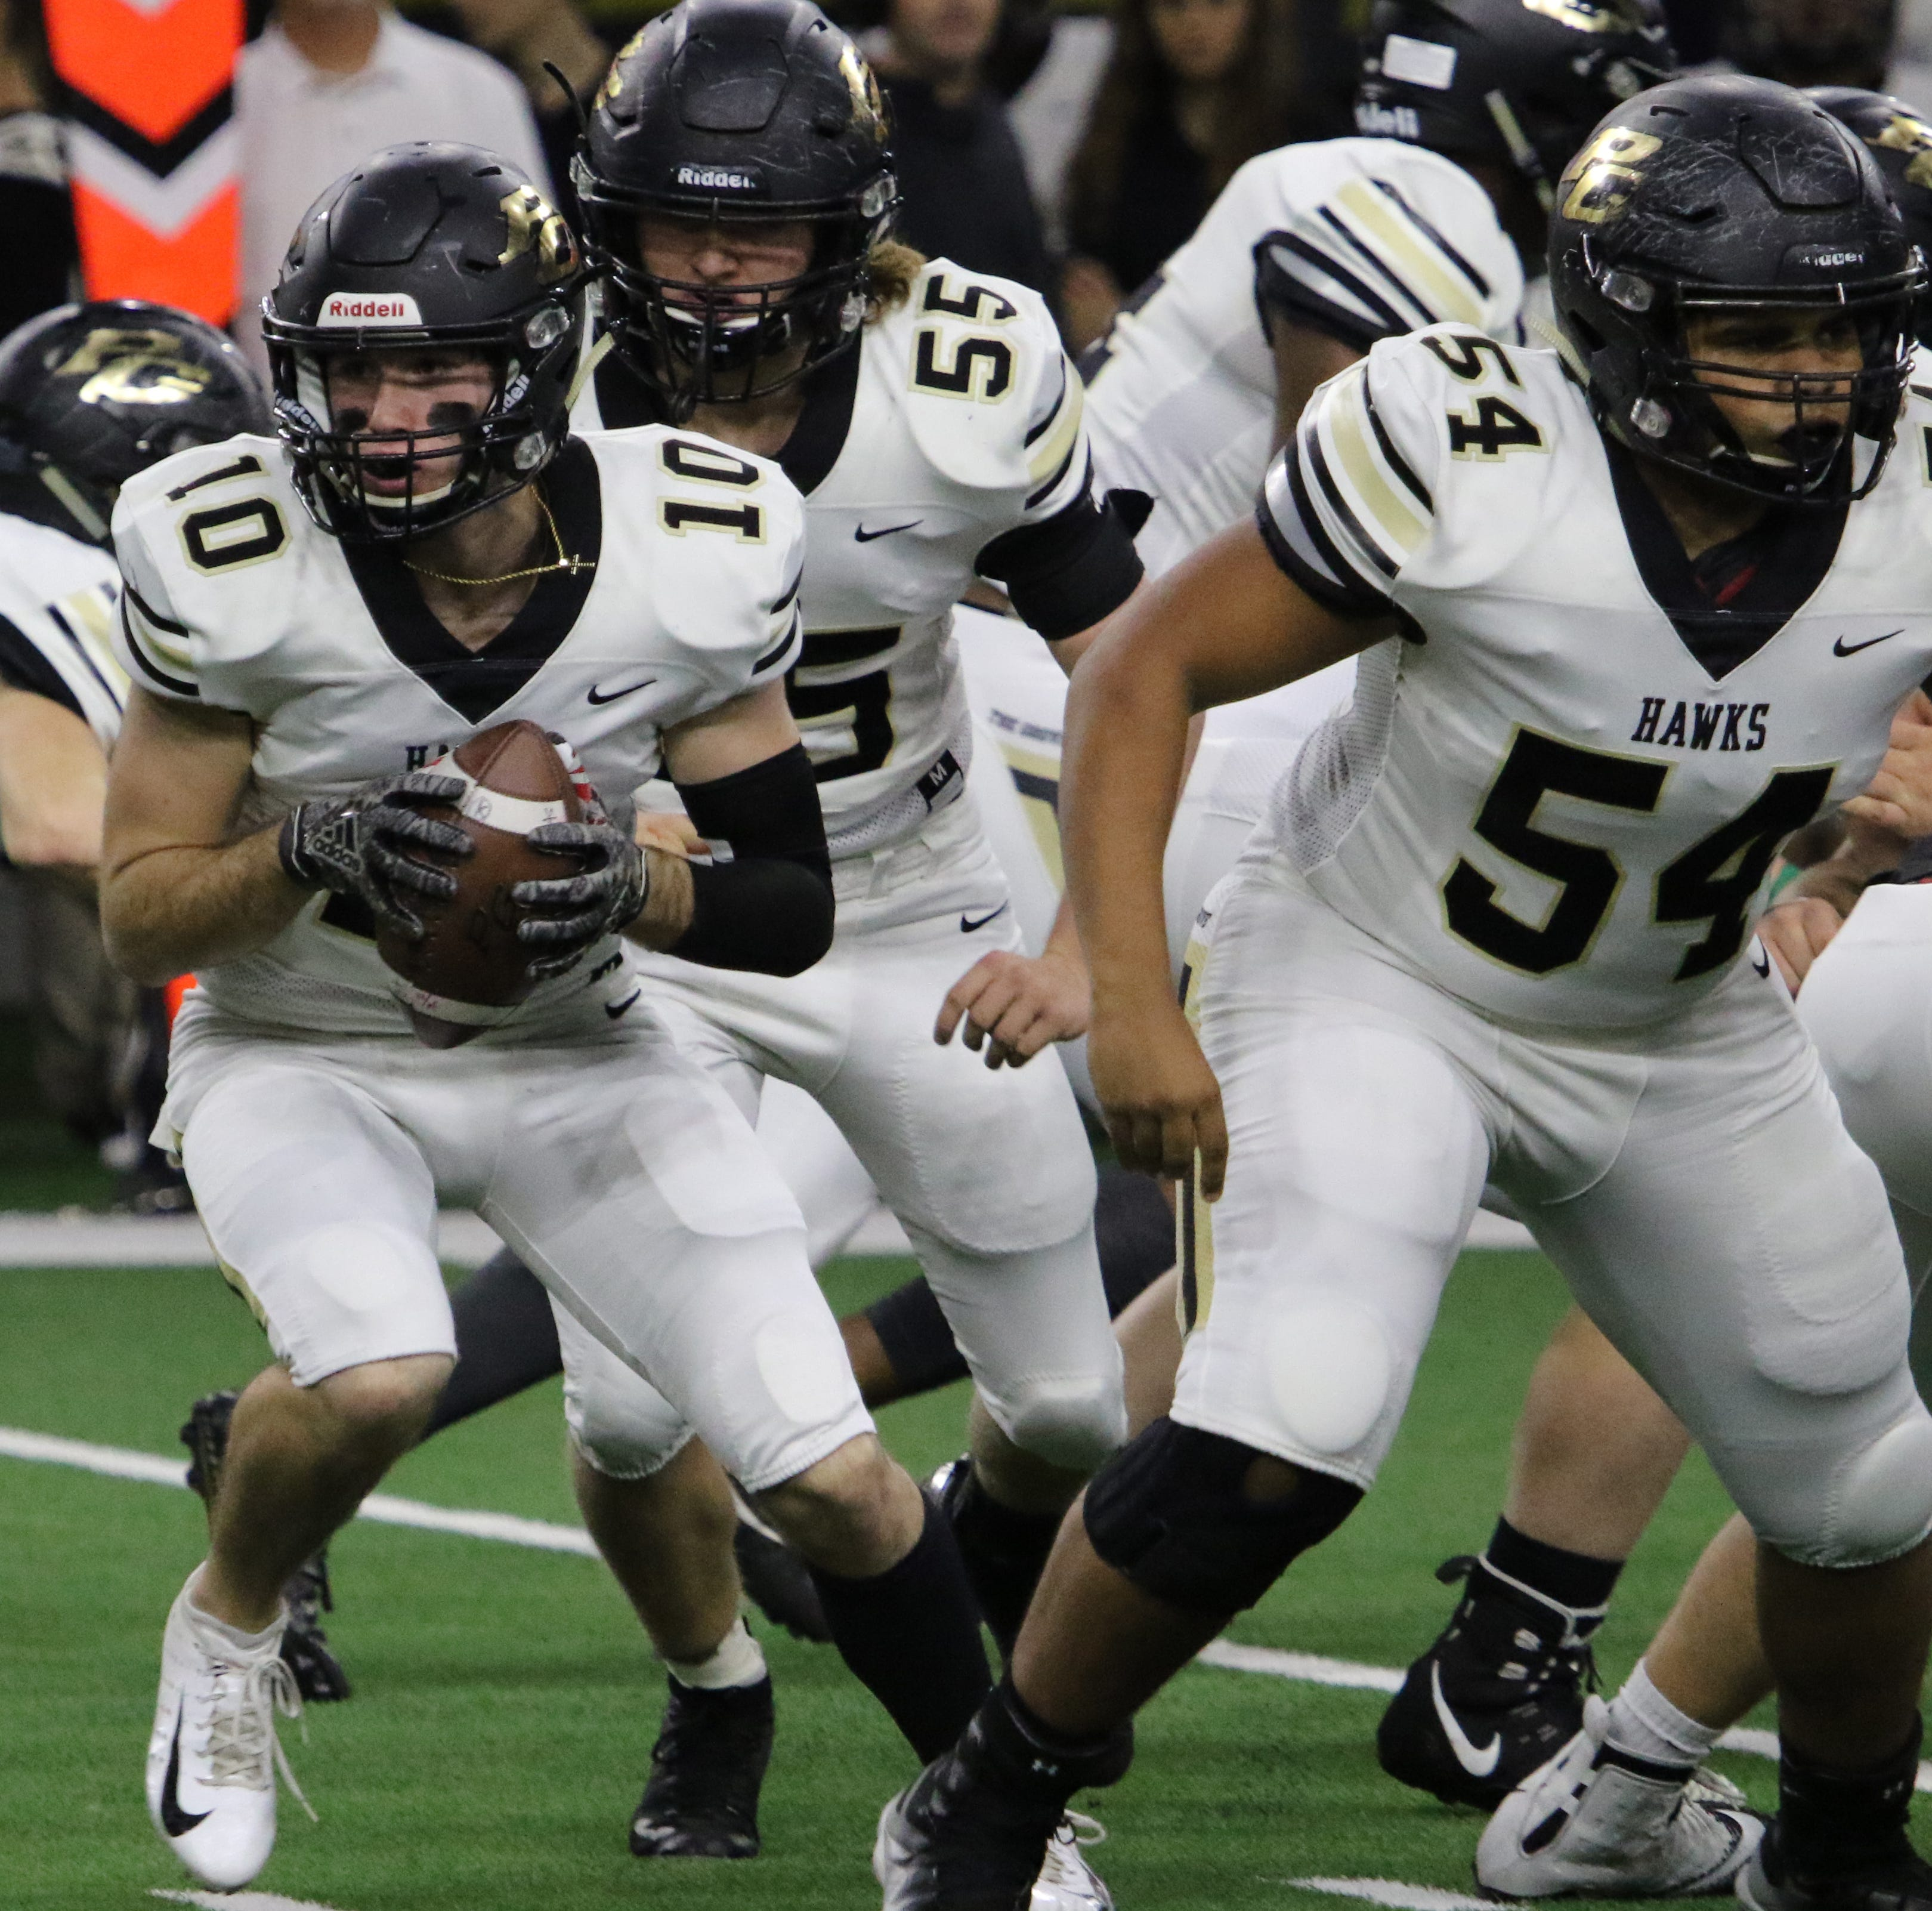 2018 UIL Texas High School Football State Championship info: pairings, TV listings, tickets